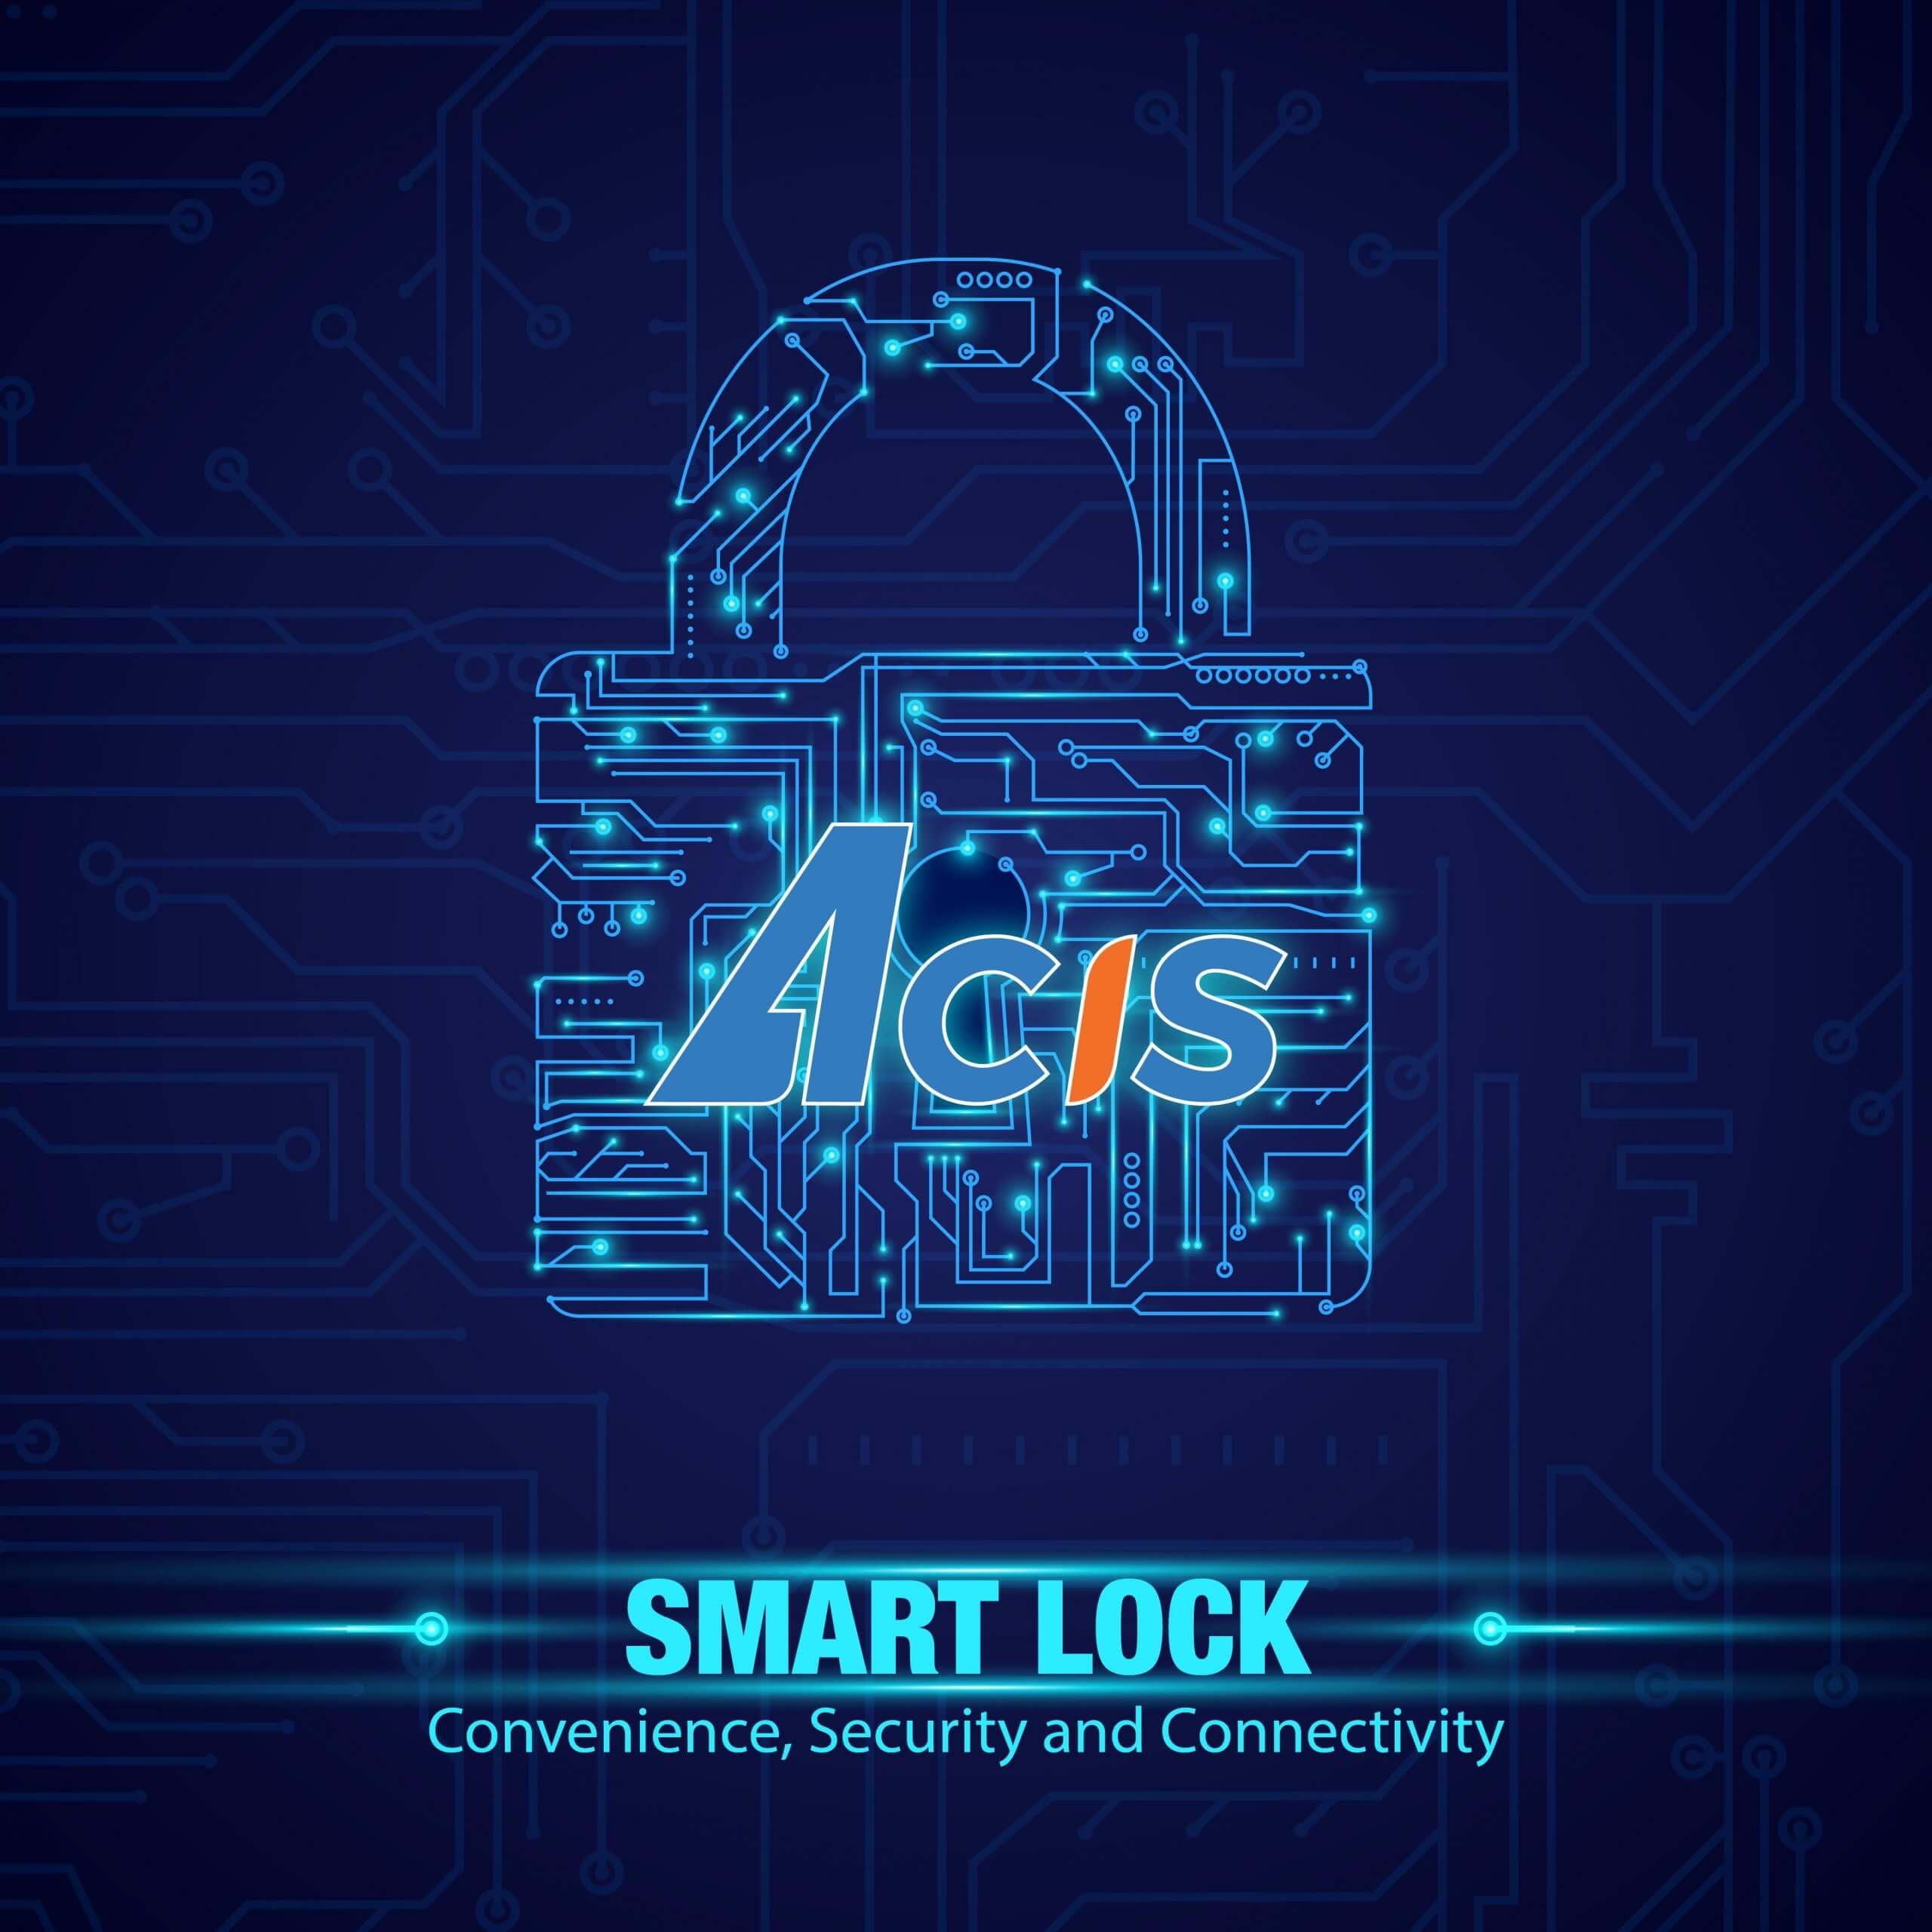 Convenience, Security and Connectivity: 3 Benefits of Smart Locks 5